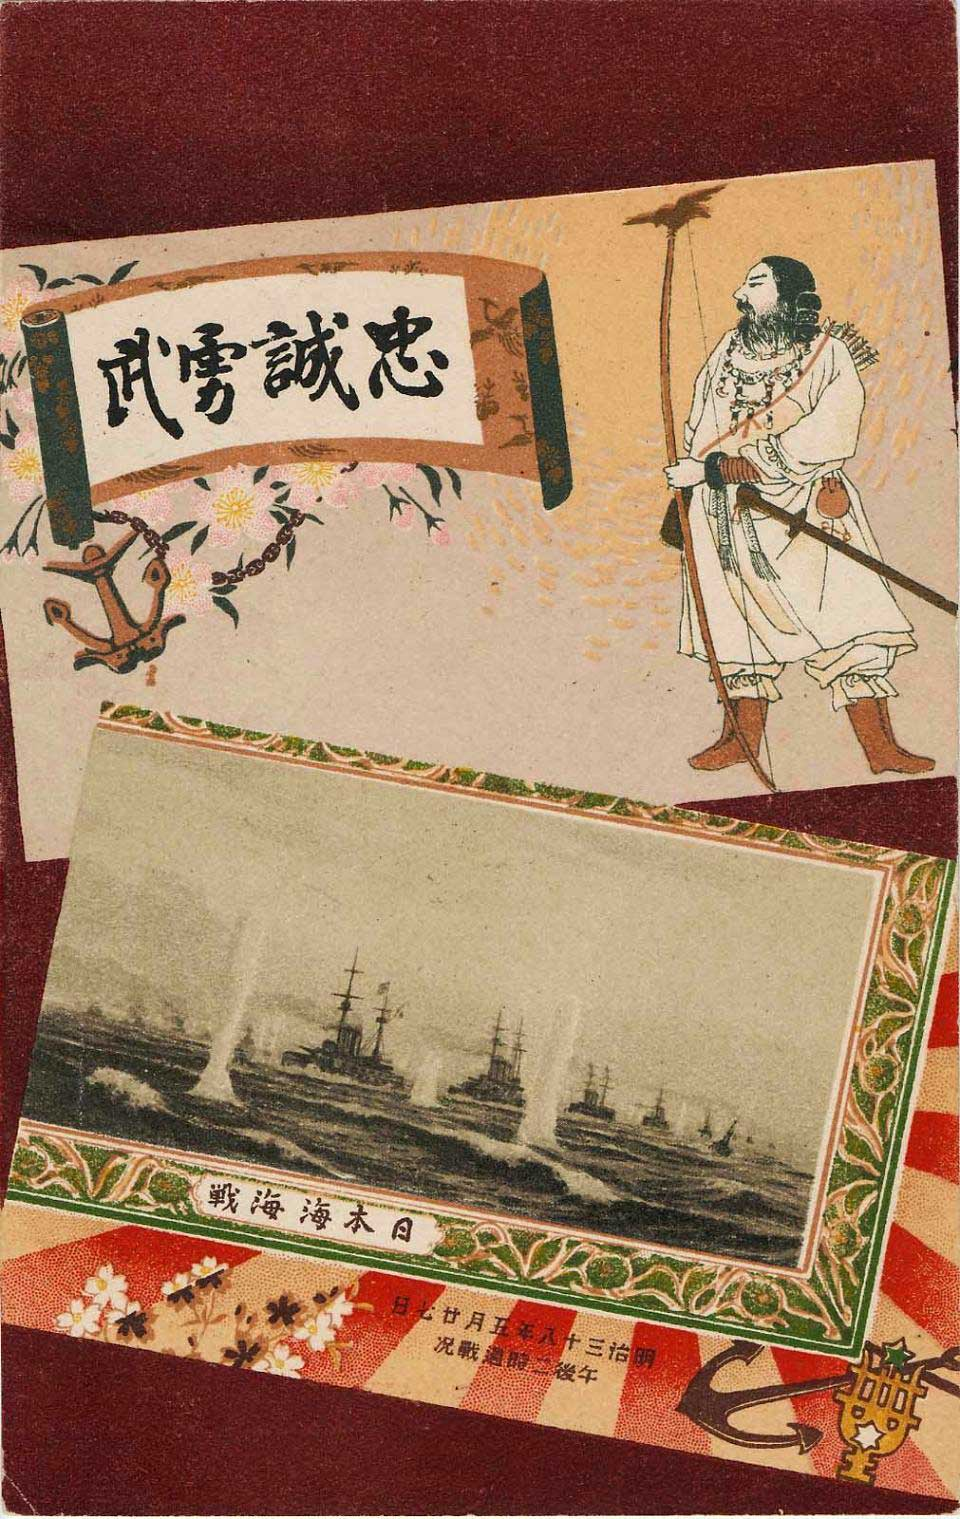 """Motifs of Postcards of the Battle of the Japan Sea,"" 1906. Visualizing Cultures [2002.3582] Museum of Fine Arts, Boston.  Link to view Visual Narrative on Visualizing Cultures website."